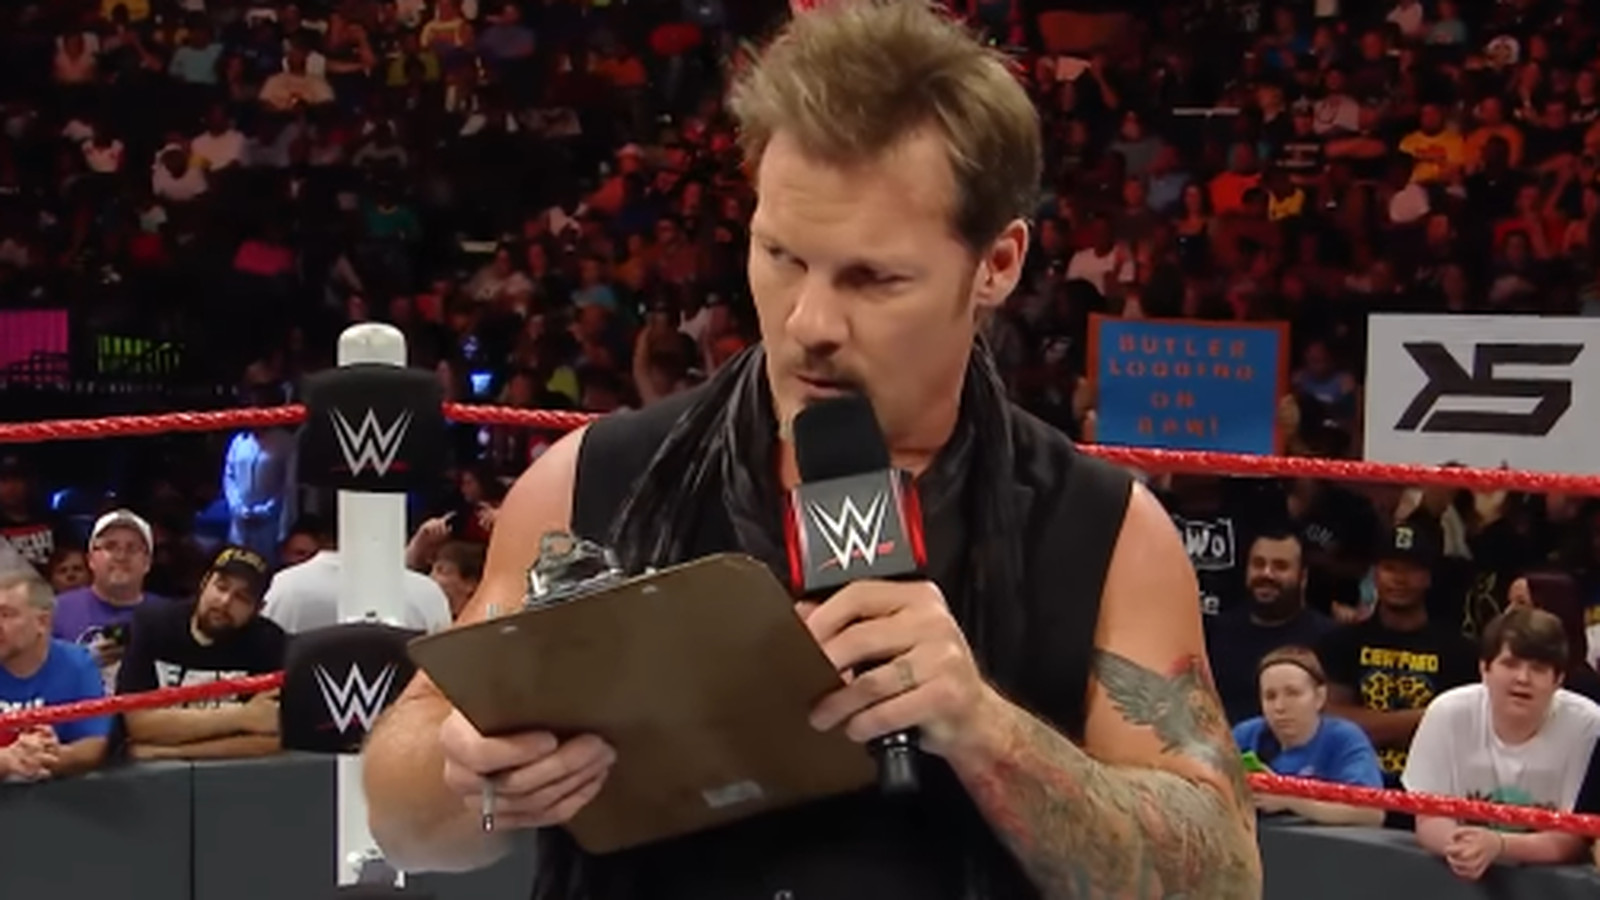 Deep Wallpaper Quotes Who Is On The List Of Jericho That We Know Of